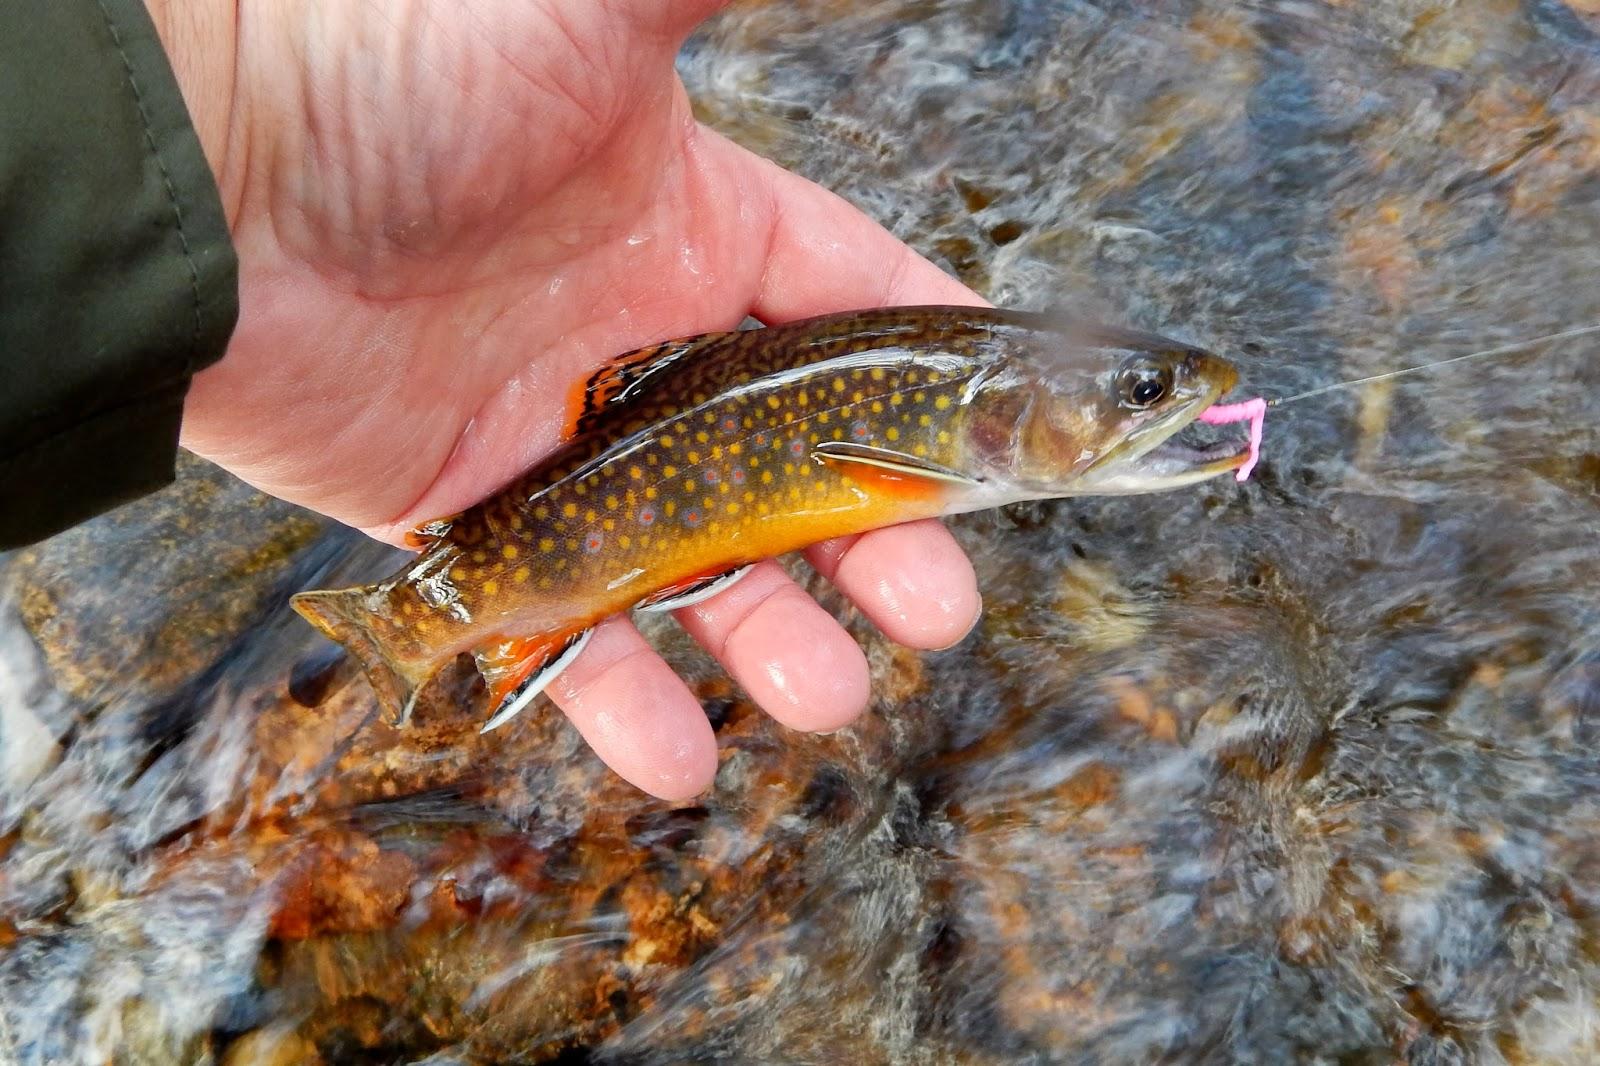 small trout | Bonefish on the Brain